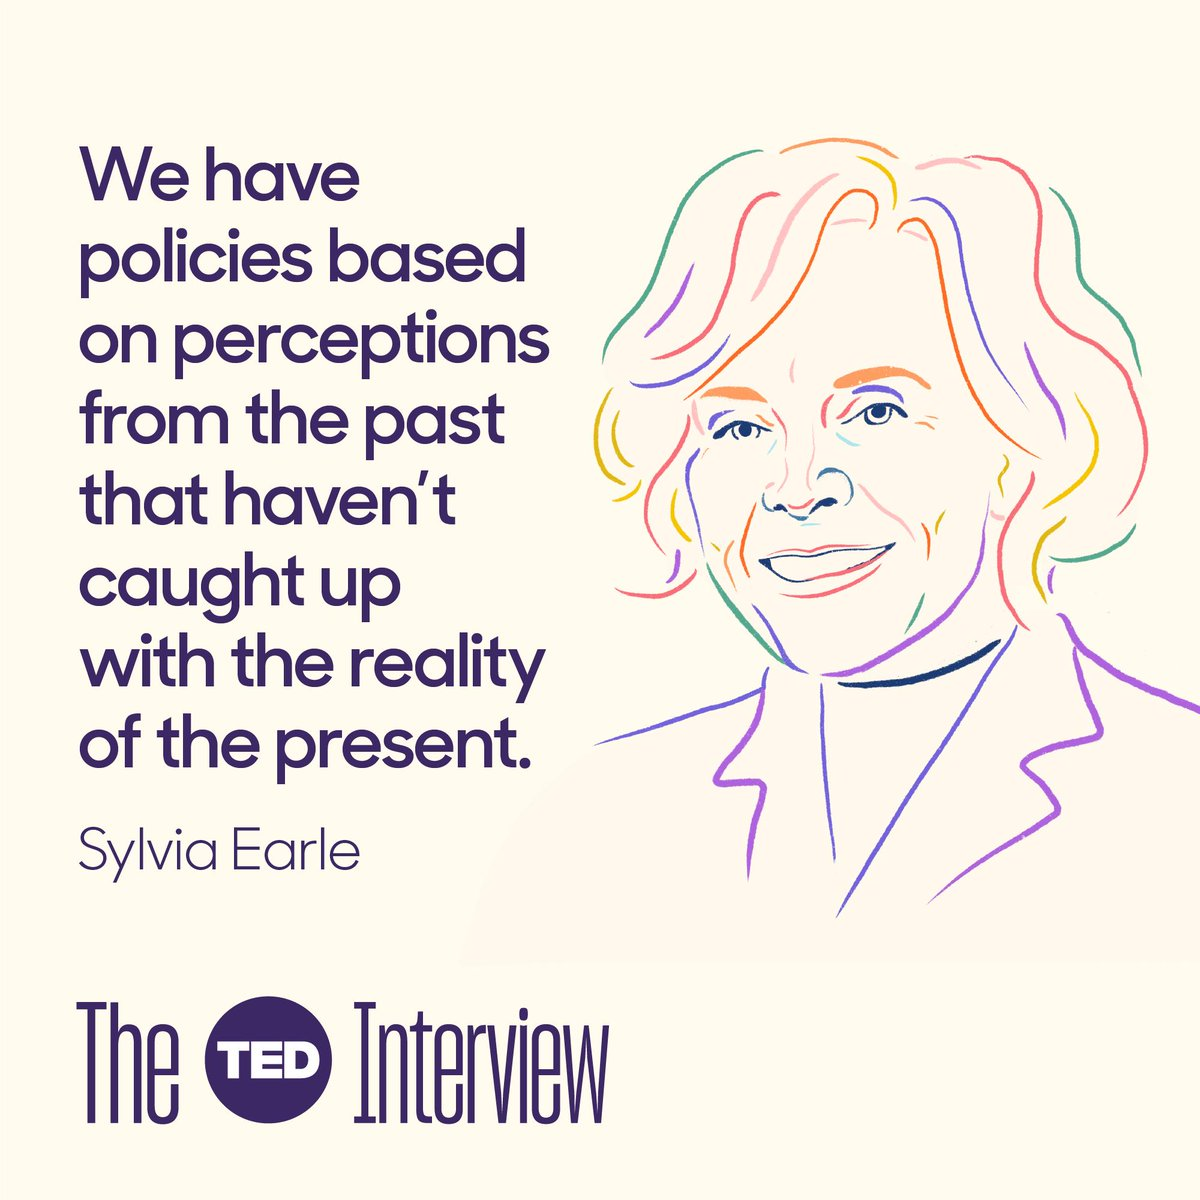 Excited to share this episode of #TheTEDInterview featuring the iconic marine scientist and lifelong advocate for the oceans, Her Deepness @SylviaEarle. An hour of wonder, insight and concern.